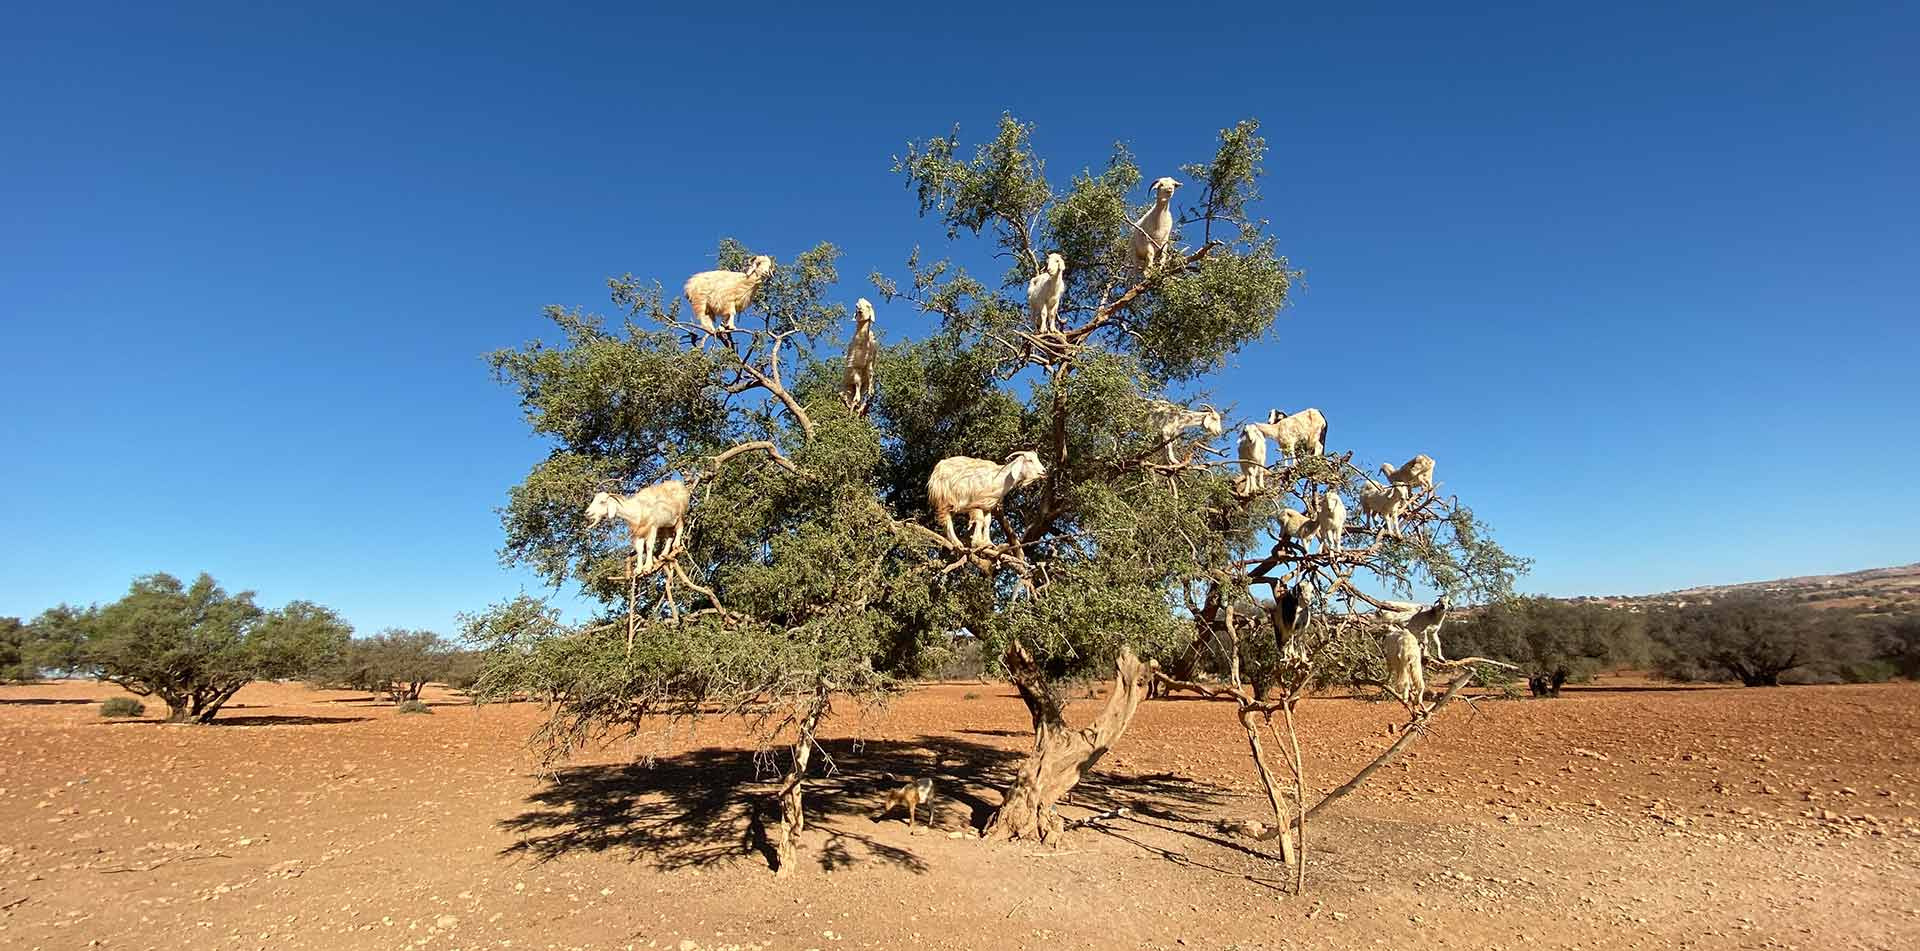 Africa Morocco white goats climbing perched in tall argan tree branches - luxury vacation destinations